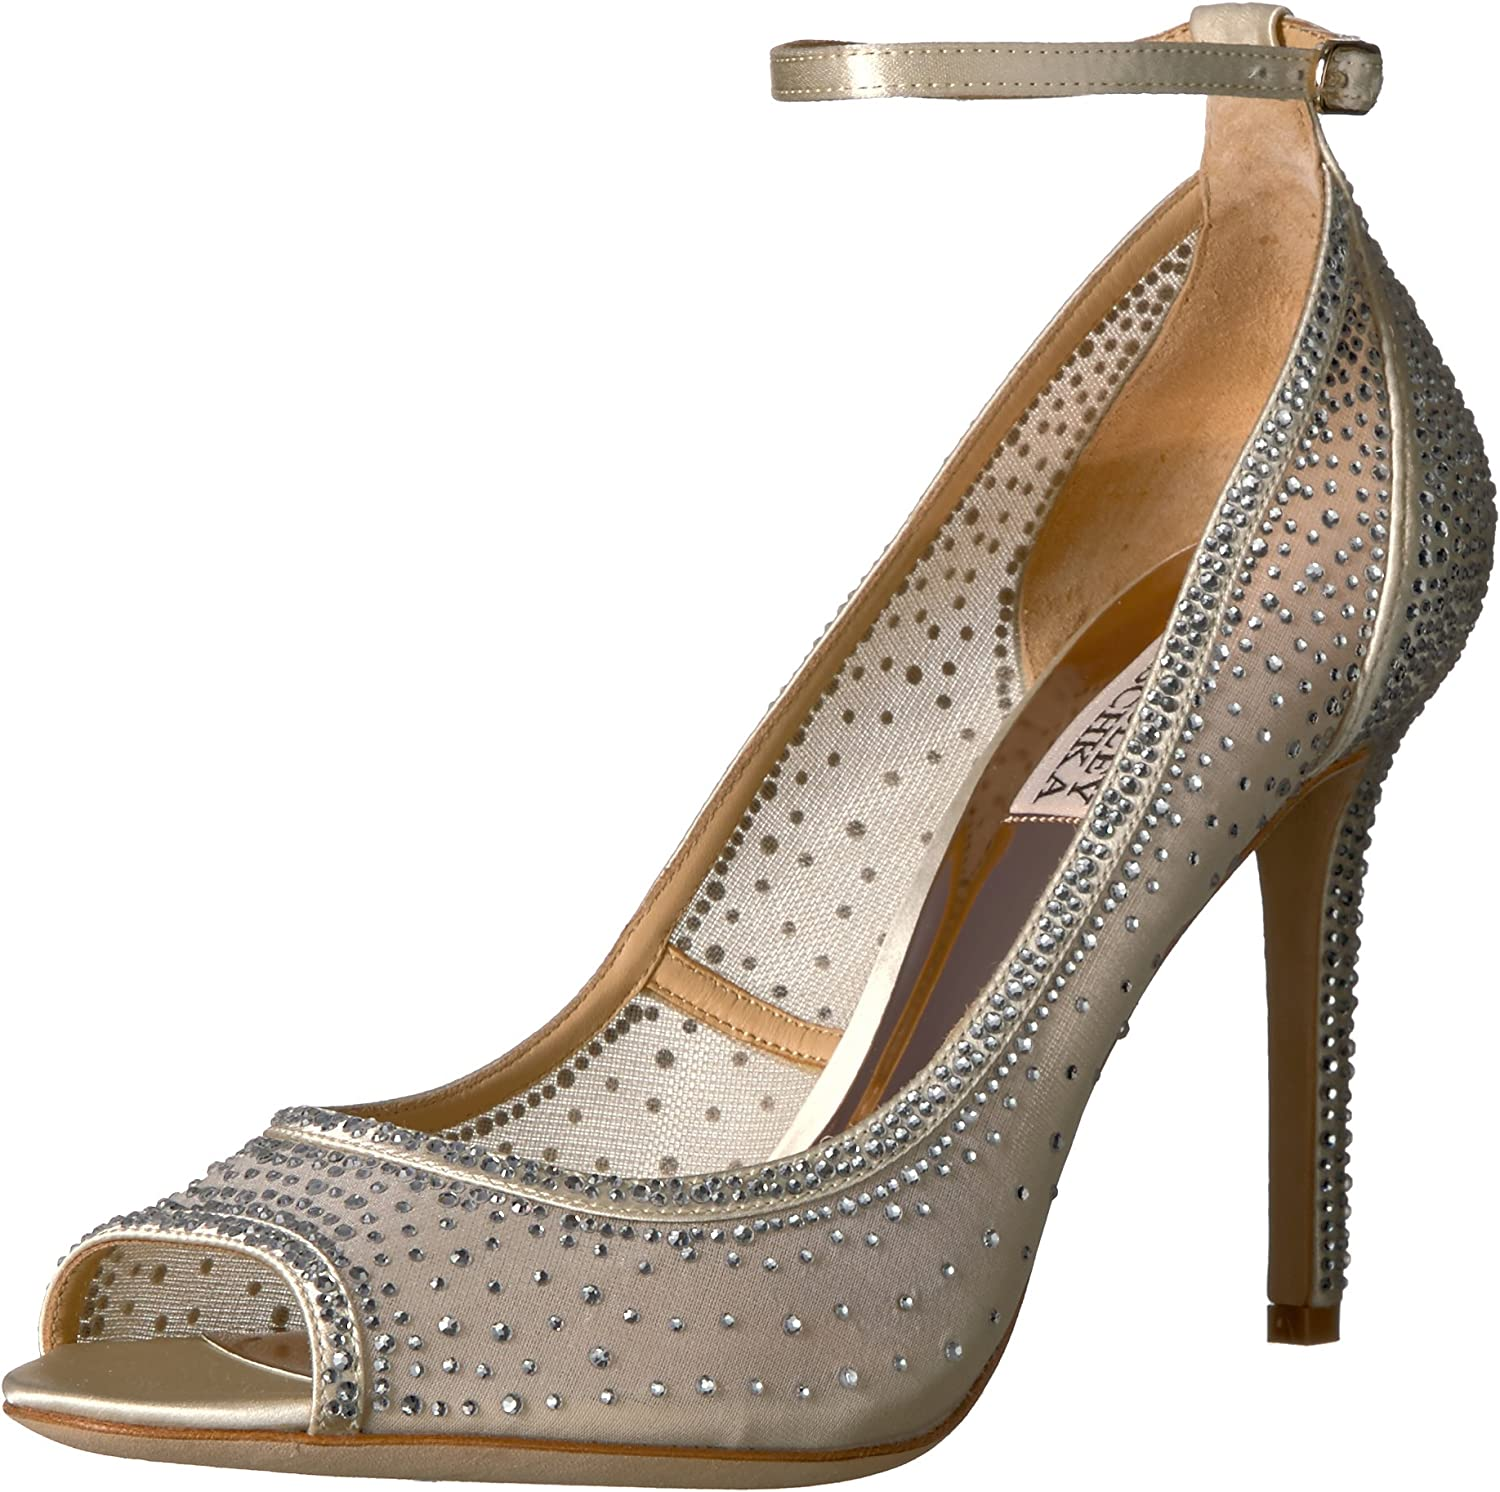 Badgley Mischka Womens Weylin Pump